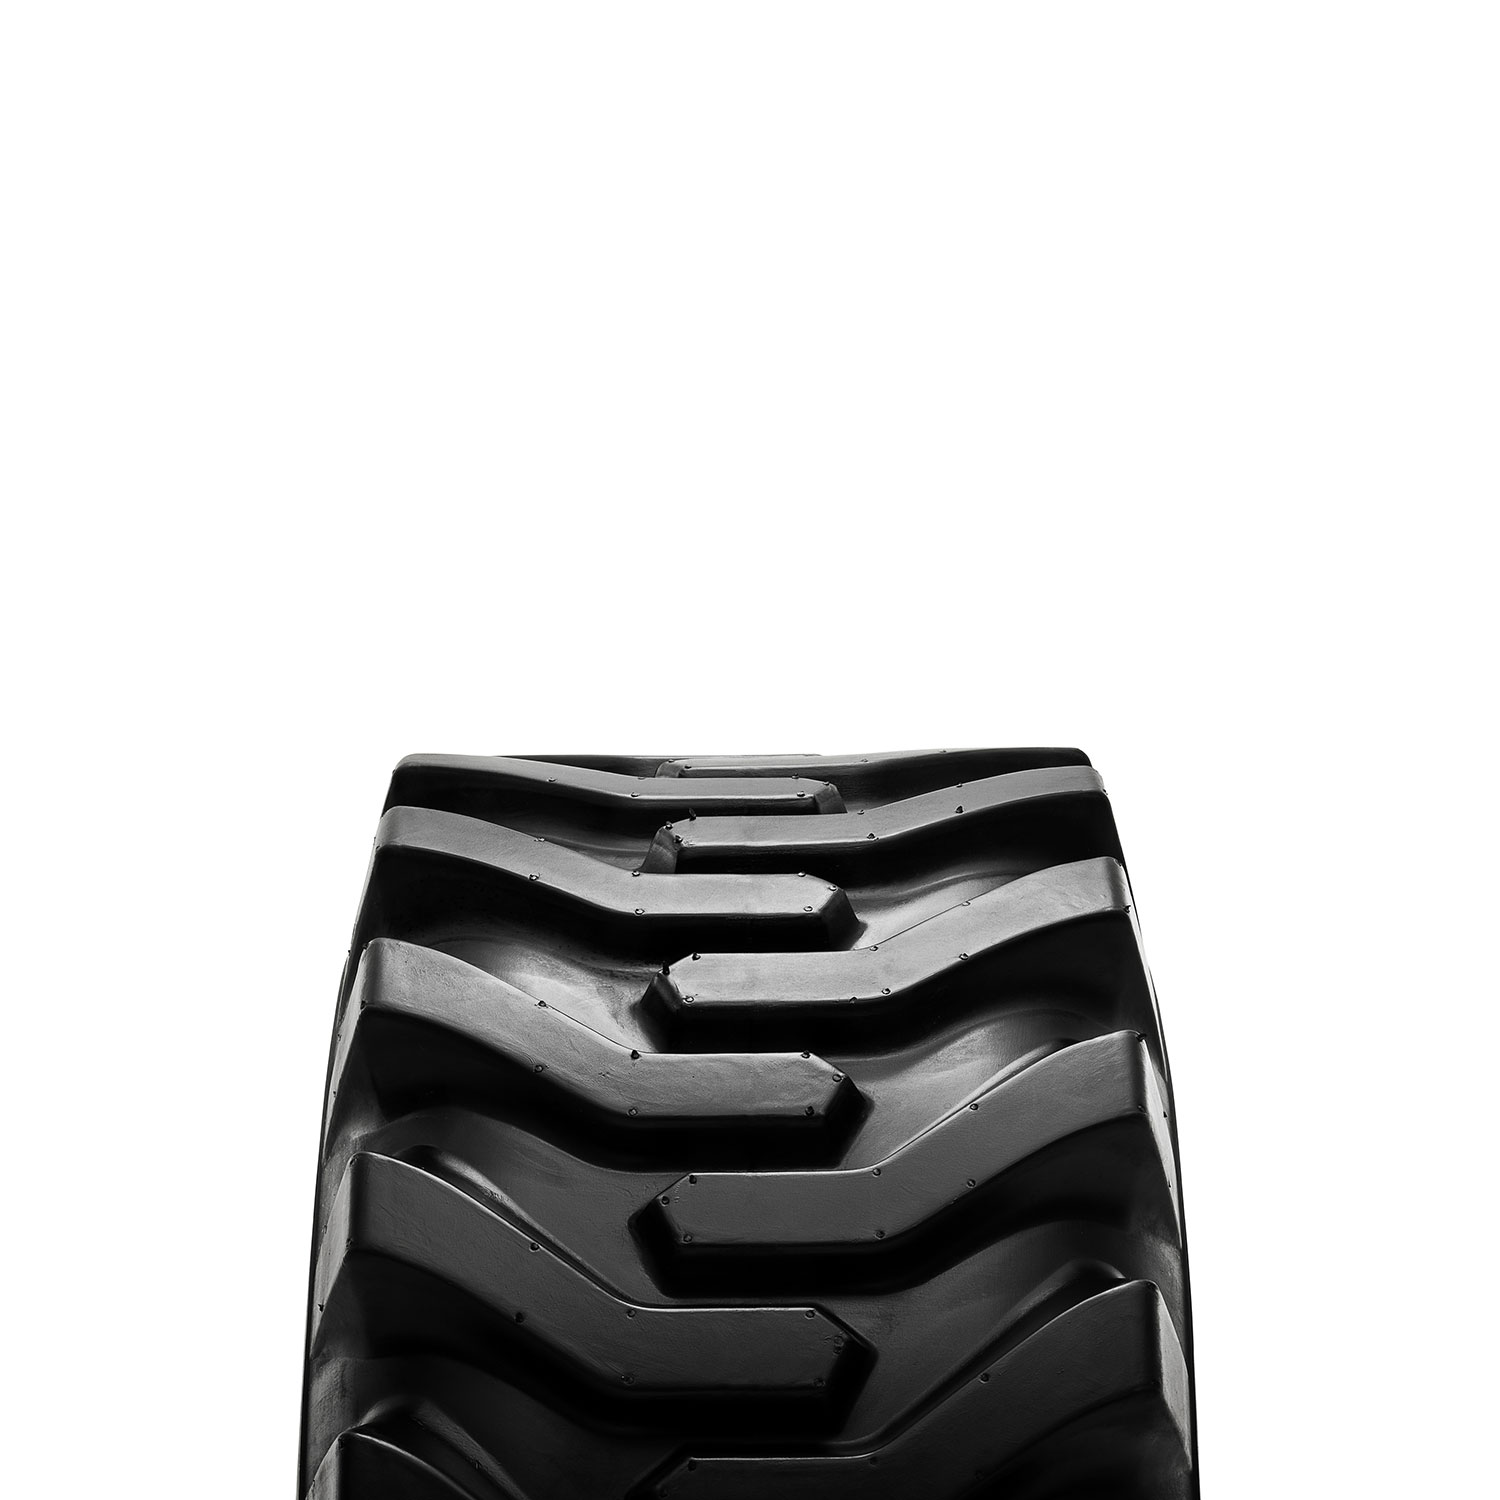 Tire Pressure Light >> Camso SKS 332 - Skid Steer Loaders - Tire – Products | Camso